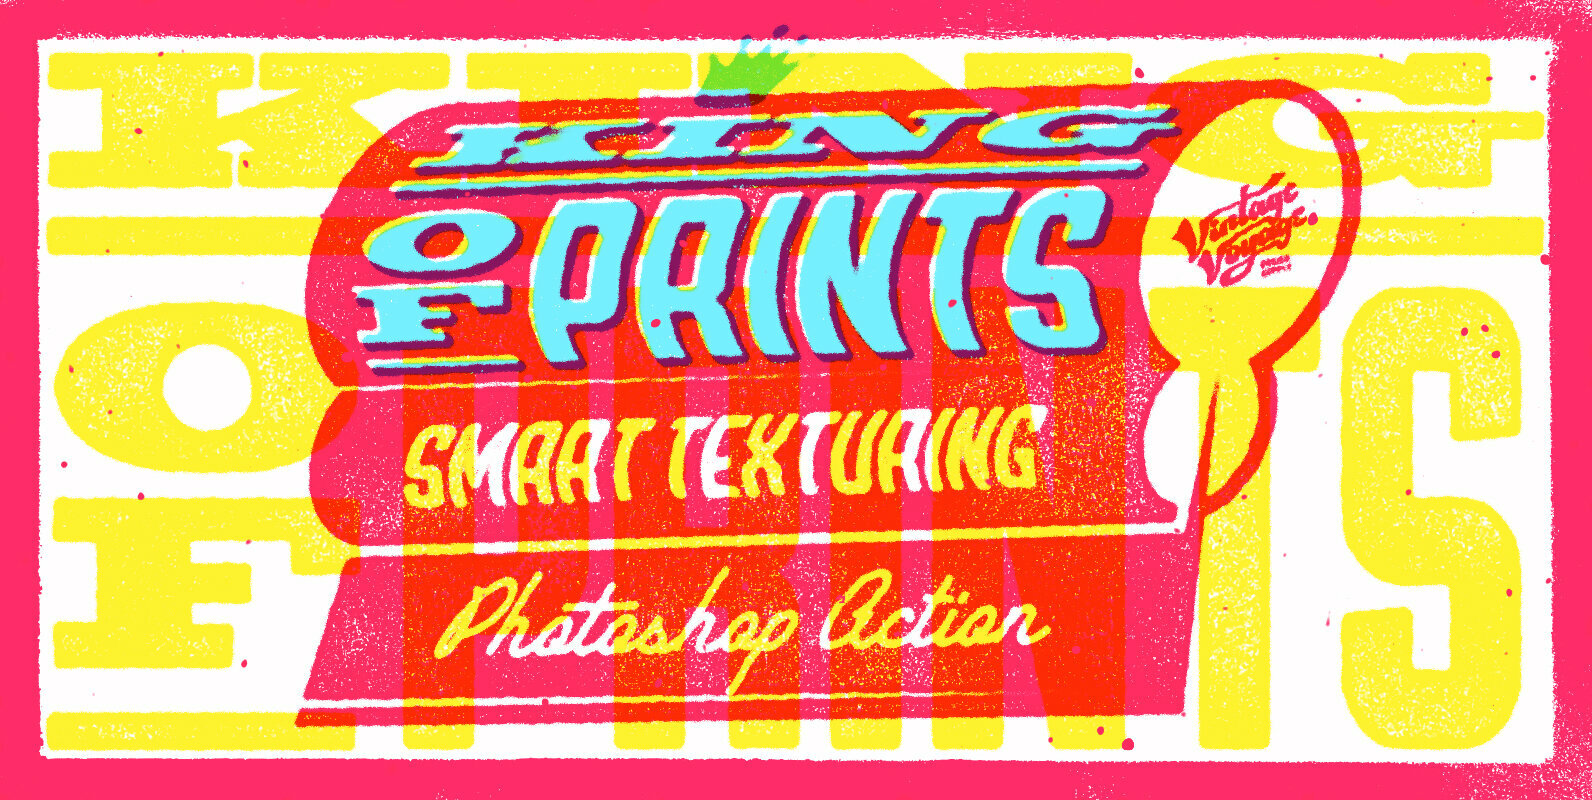 King of Prints - Smart Texturing